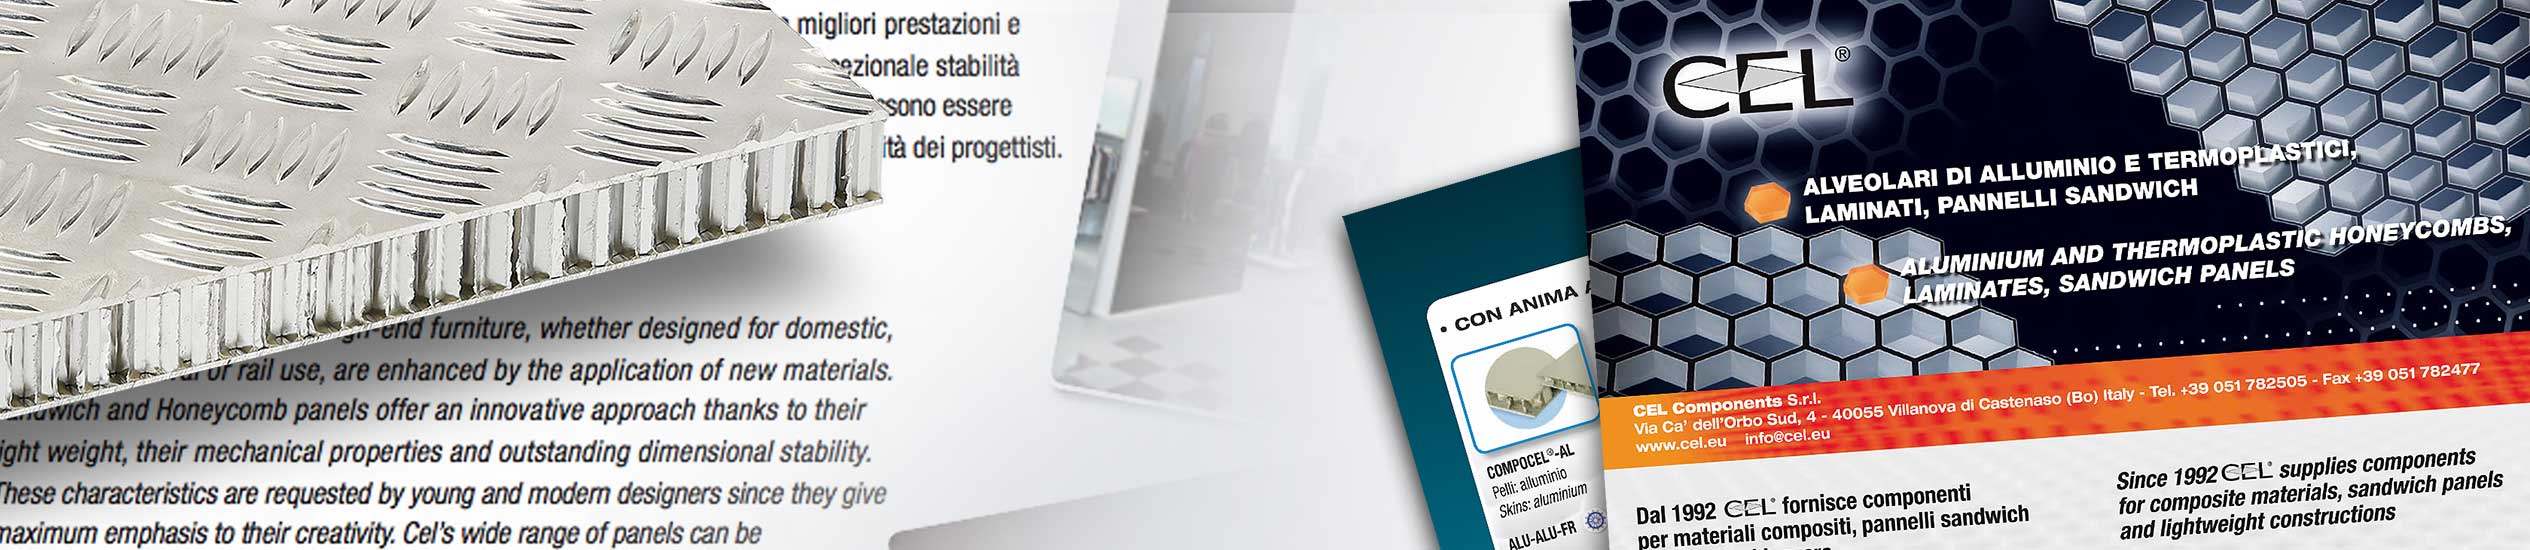 Brochure and leaflet to download concerning the wide range of CEL's products